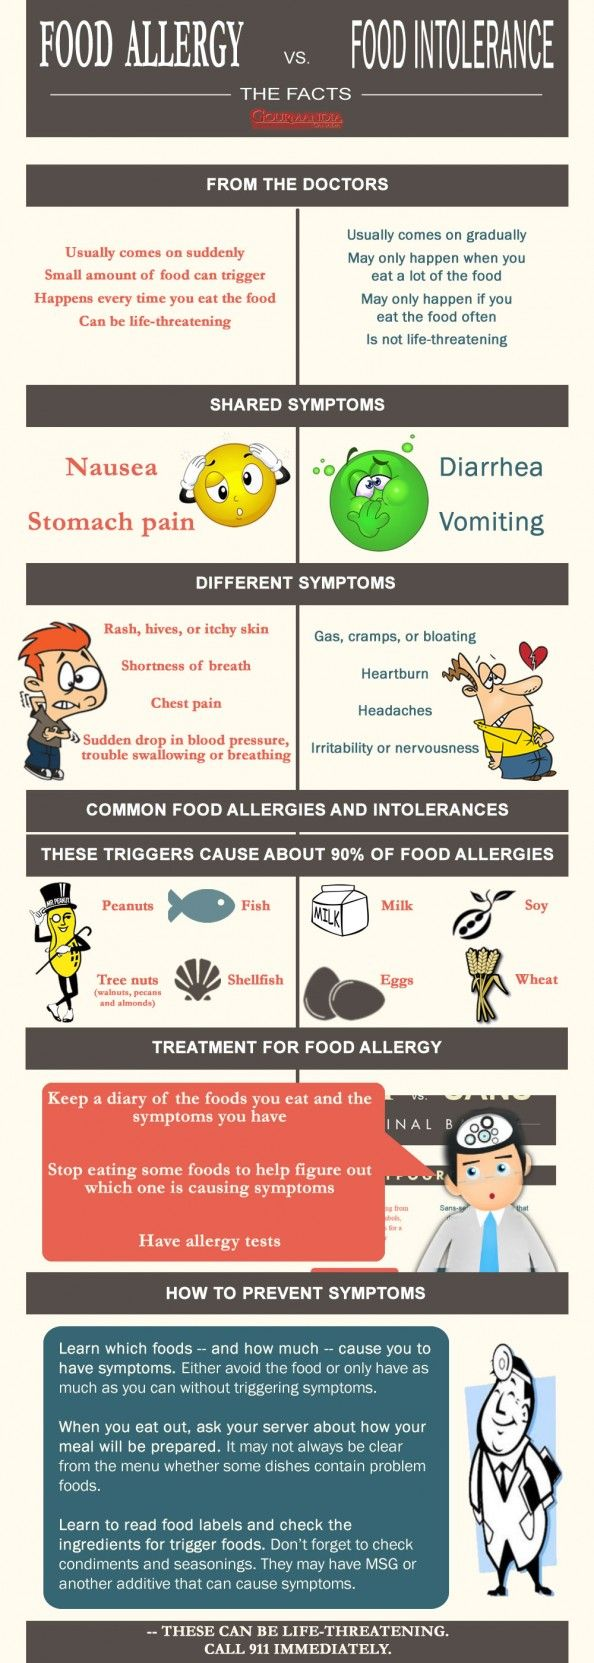 Food Allergy vs Food Intolerance